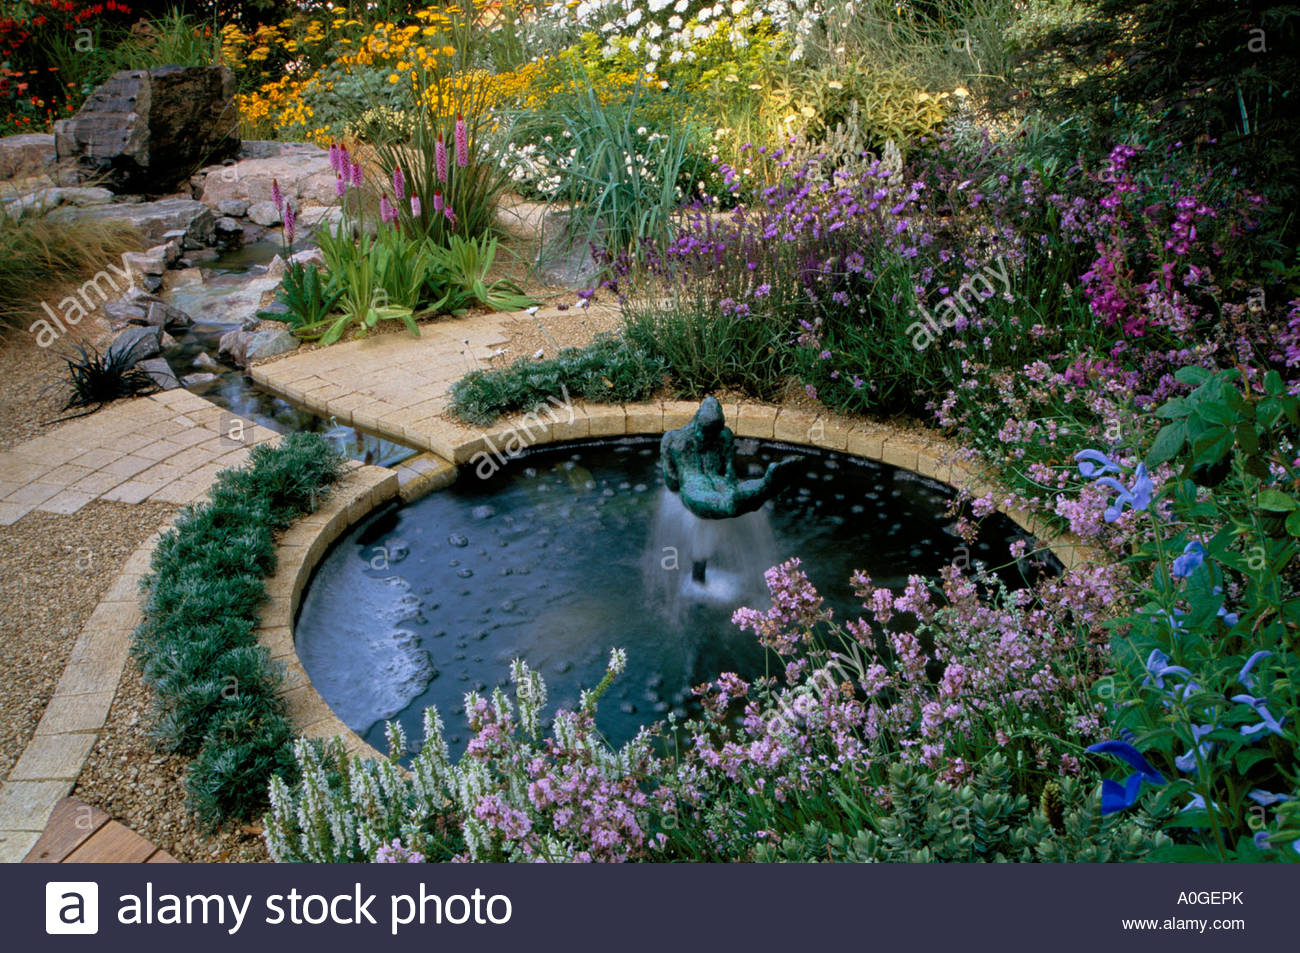 Feng shui garden design pamela woods stock photo royalty for Feng shui garden designs